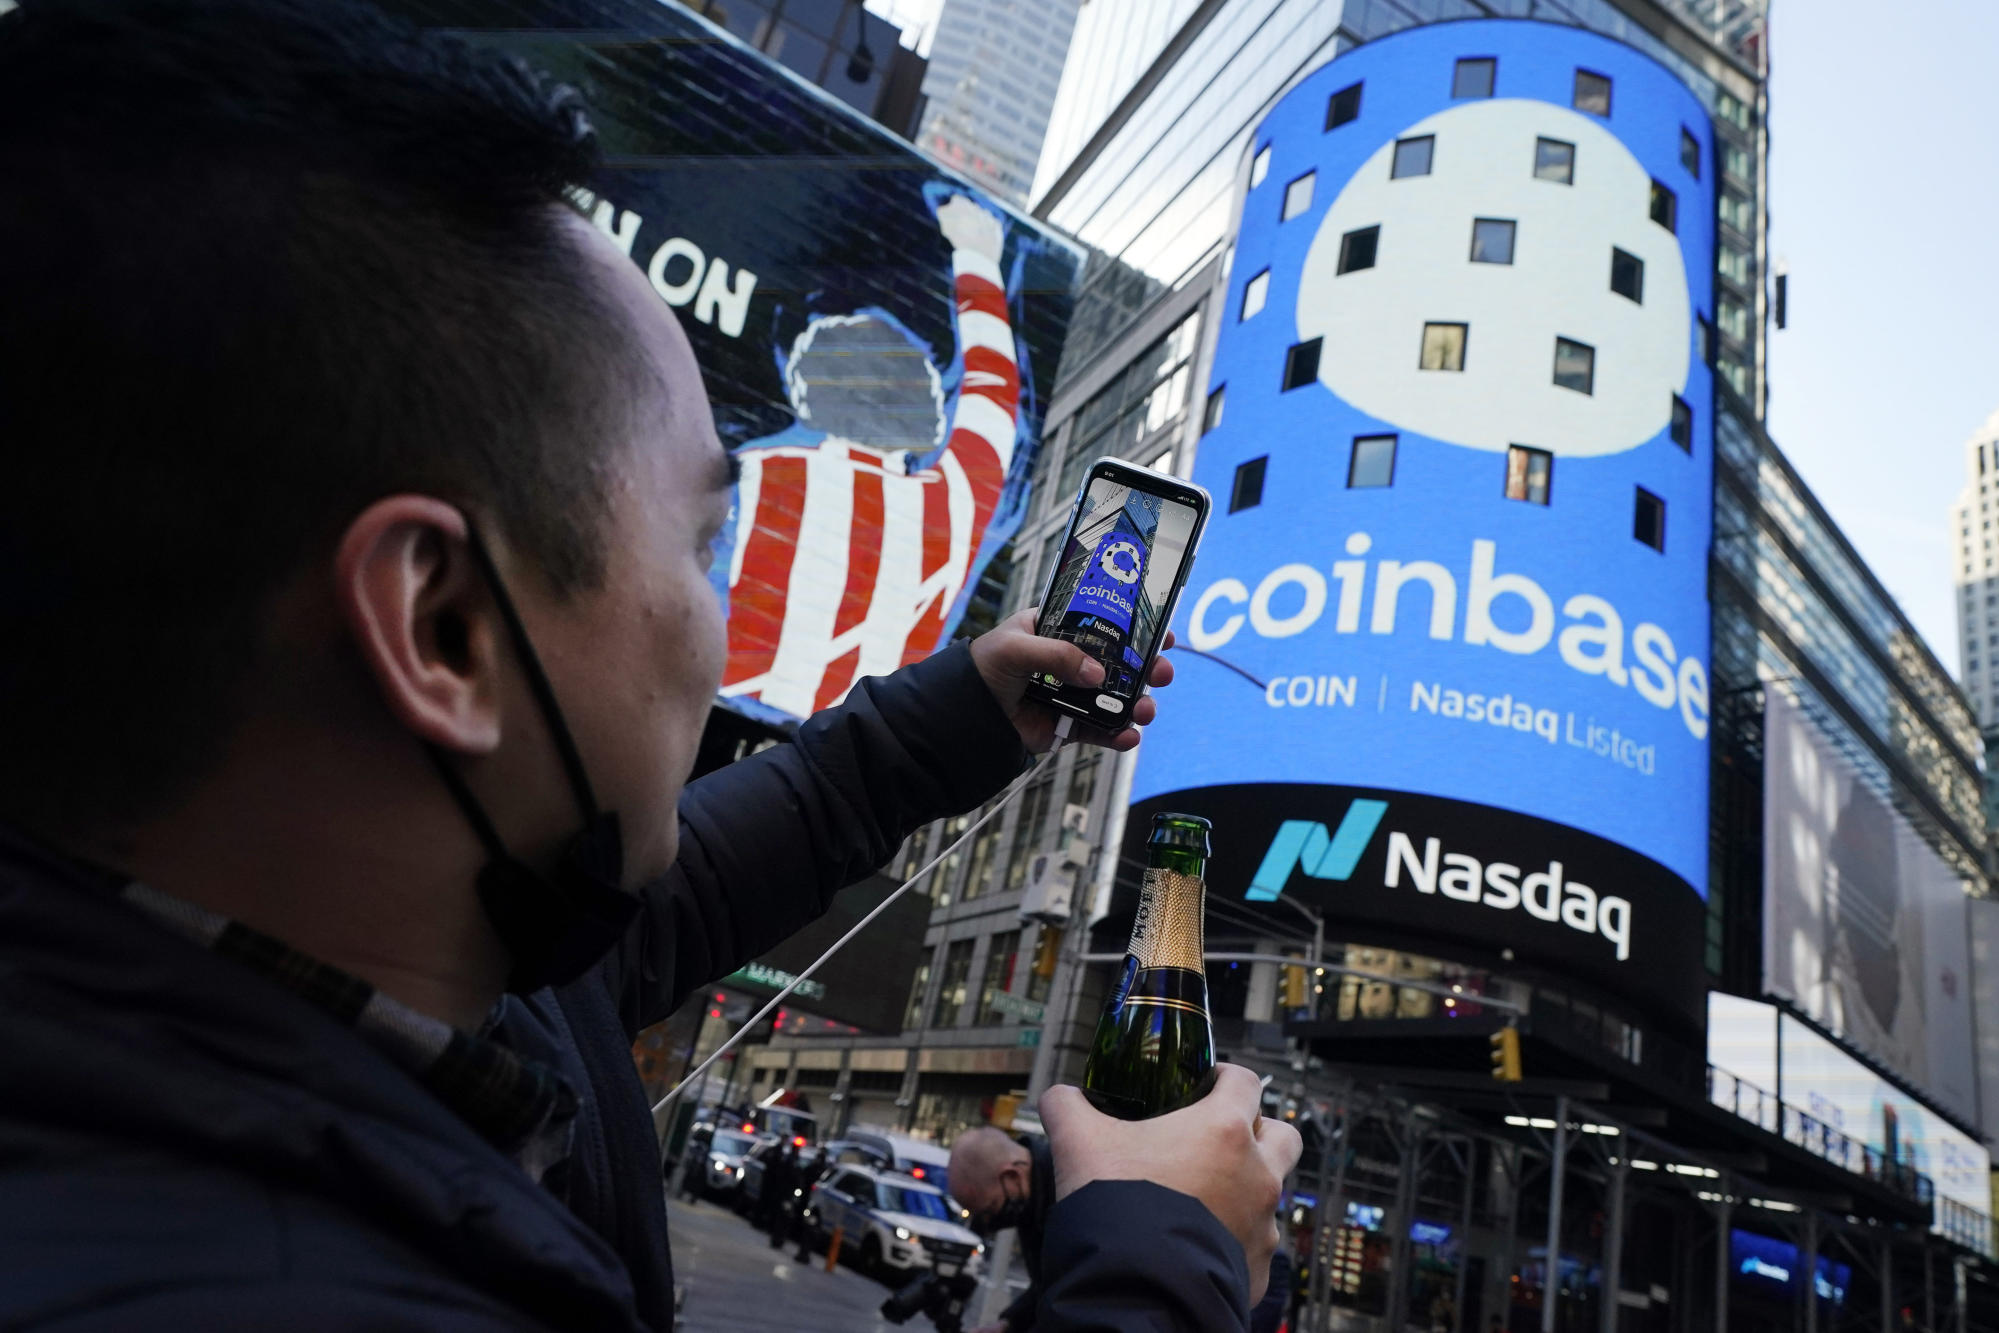 Coinbase's IPO another indication crypto is becoming mainstream, exper... image